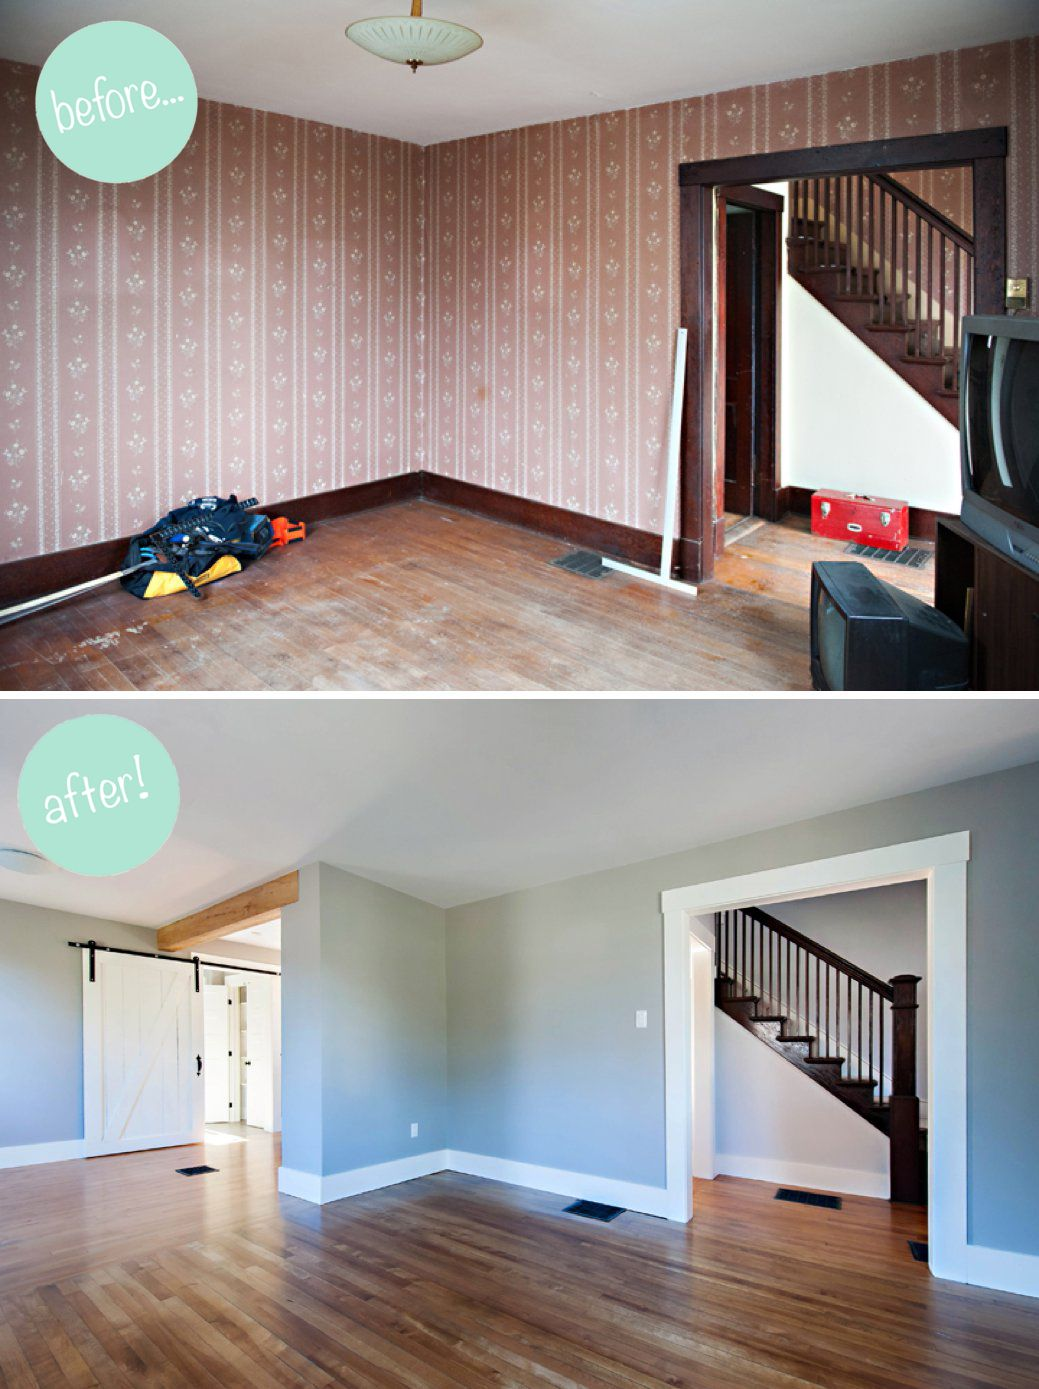 Old house interior remodel ideas